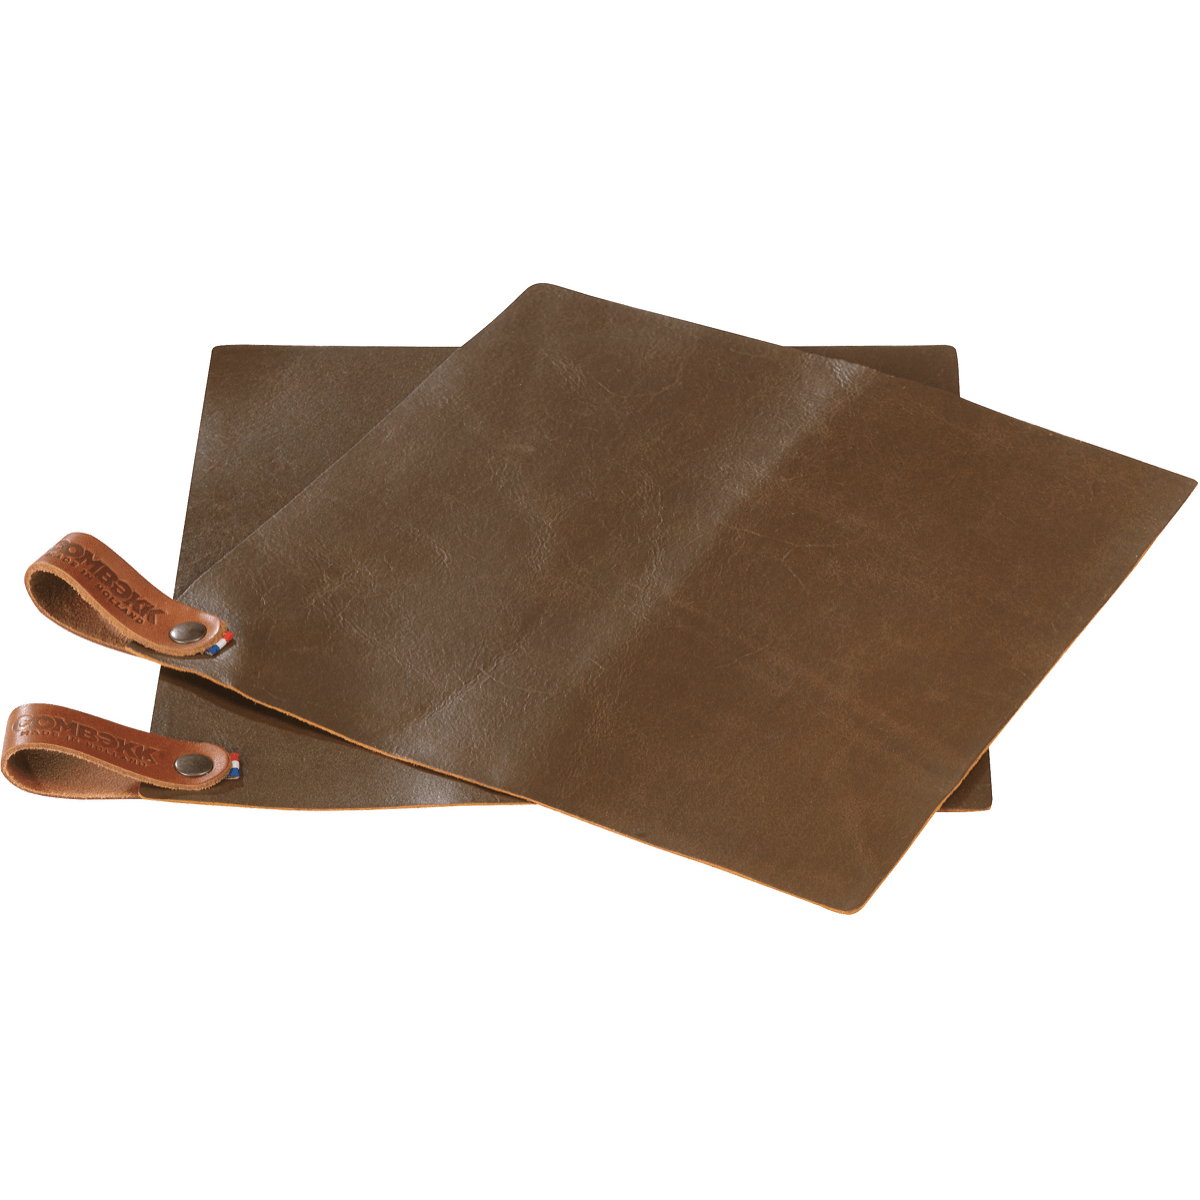 Pot Holder Leather - set of 2 Rust